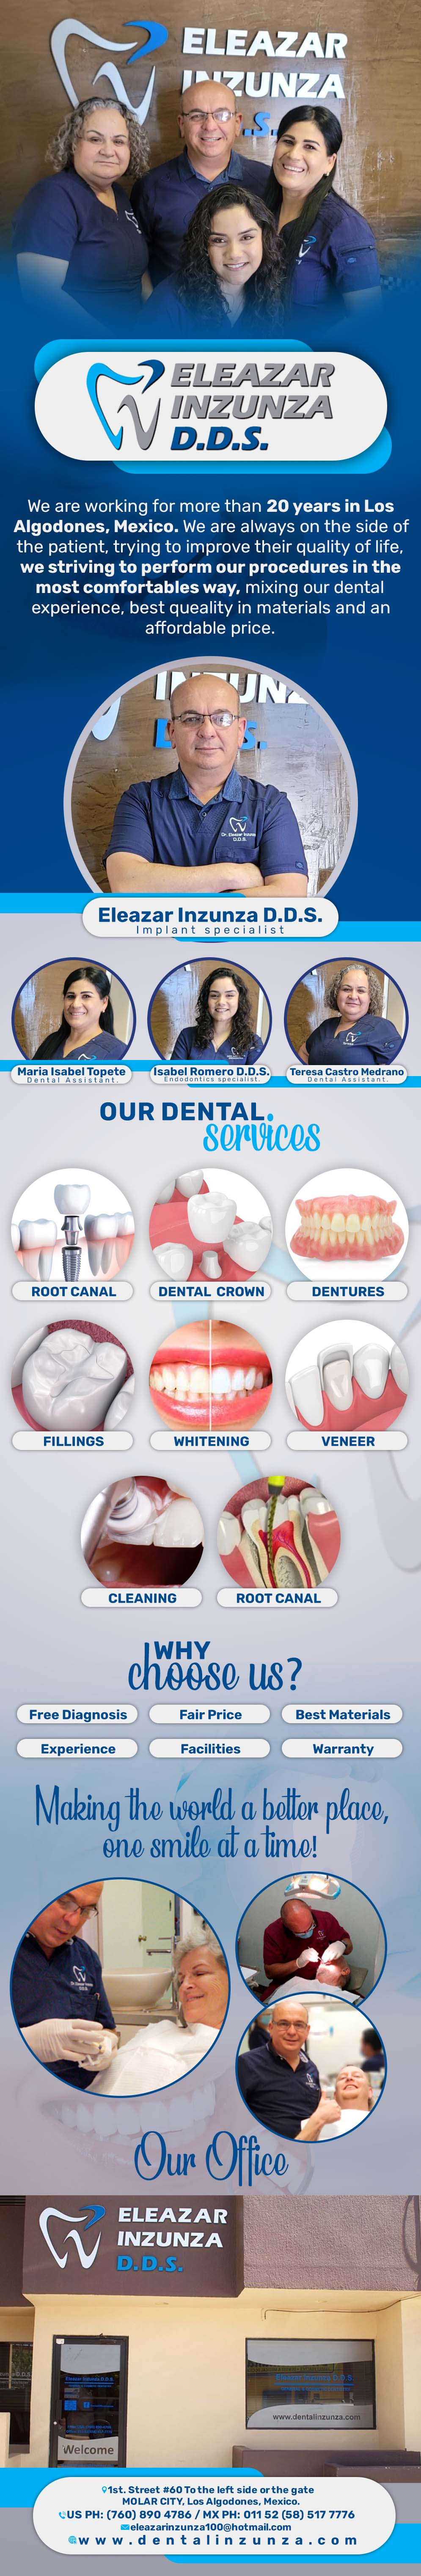 DENTAL OFFICE INZUNZA Eleazar Inzunza DDS in Algodones  in Algodones  General Dentistry and Specialists We offer complete dental services including general dentistry, cosmetic dentistry, periodontics, endodontics, orthodontics and dental implants. Bridges °X-Rays °Porcelain Veneers °Metal Crowns °Dental Bonding °Deep Cleaning °Denture Repair °Traditional Acrylic Dentures °Prescriptions °Root Canals °Metal Bridges °White Fillings °Root Canal Therapy Relines (Hard or Soft) °General Oral Surgeries °Porcelain Crowns °Flexible Partials °Composite Posts °Teeth Whitening          General Dentistry and Specialists We offer complete dental services including general dentistry, cosmetic dentistry, periodontics, endodontics, orthodontics and dental implants. Bridges °X-Rays °Porcelain Veneers °Metal Crowns °Dental Bonding °Deep Cleaning °Denture Repair °Traditional Acrylic Dentures °Prescriptions °Root Canals °Metal Bridges °White Fillings °Root Canal Therapy Relines (Hard or Soft) °General Oral Surgeries °Porcelain Crowns °Flexible Partials °Composite Posts °Teeth Whitening